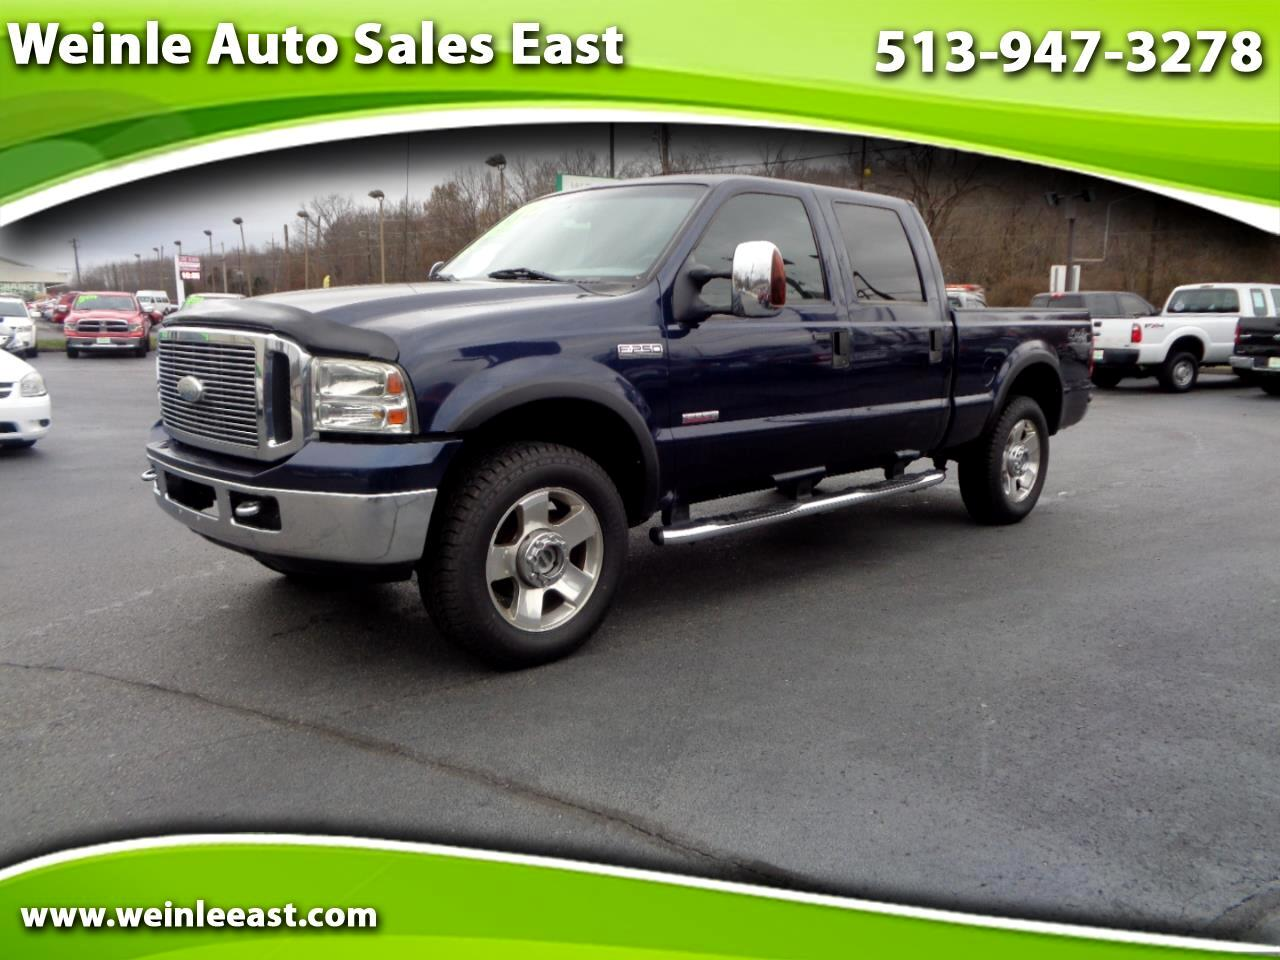 2007 Ford Super Duty F-250 LARIAT 4X4 CREW CAB 6.0 POWER STROKE DIESEL